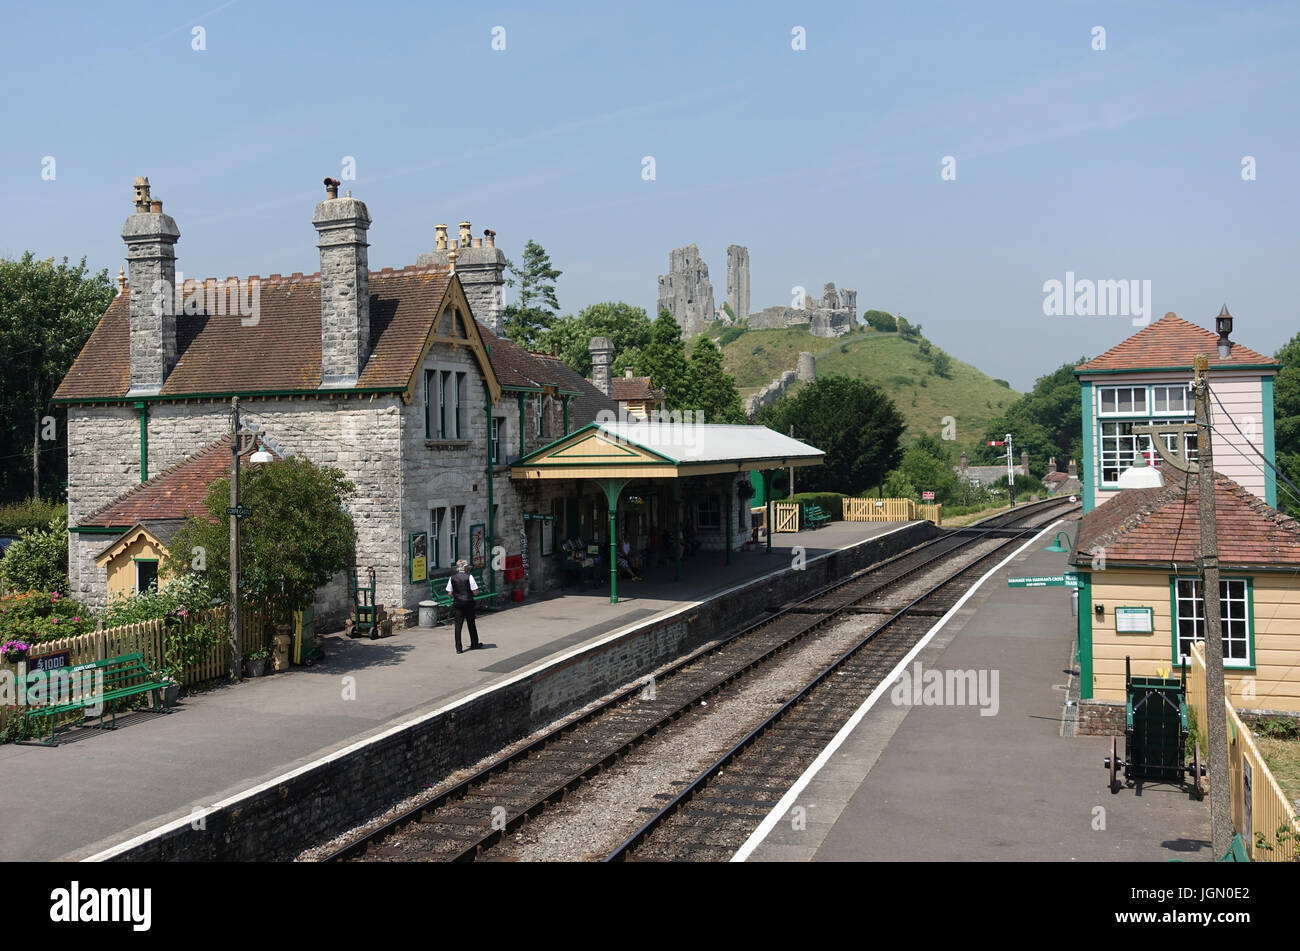 Corfe Castle Station on the Preserved Swanage Railway - Stock Image